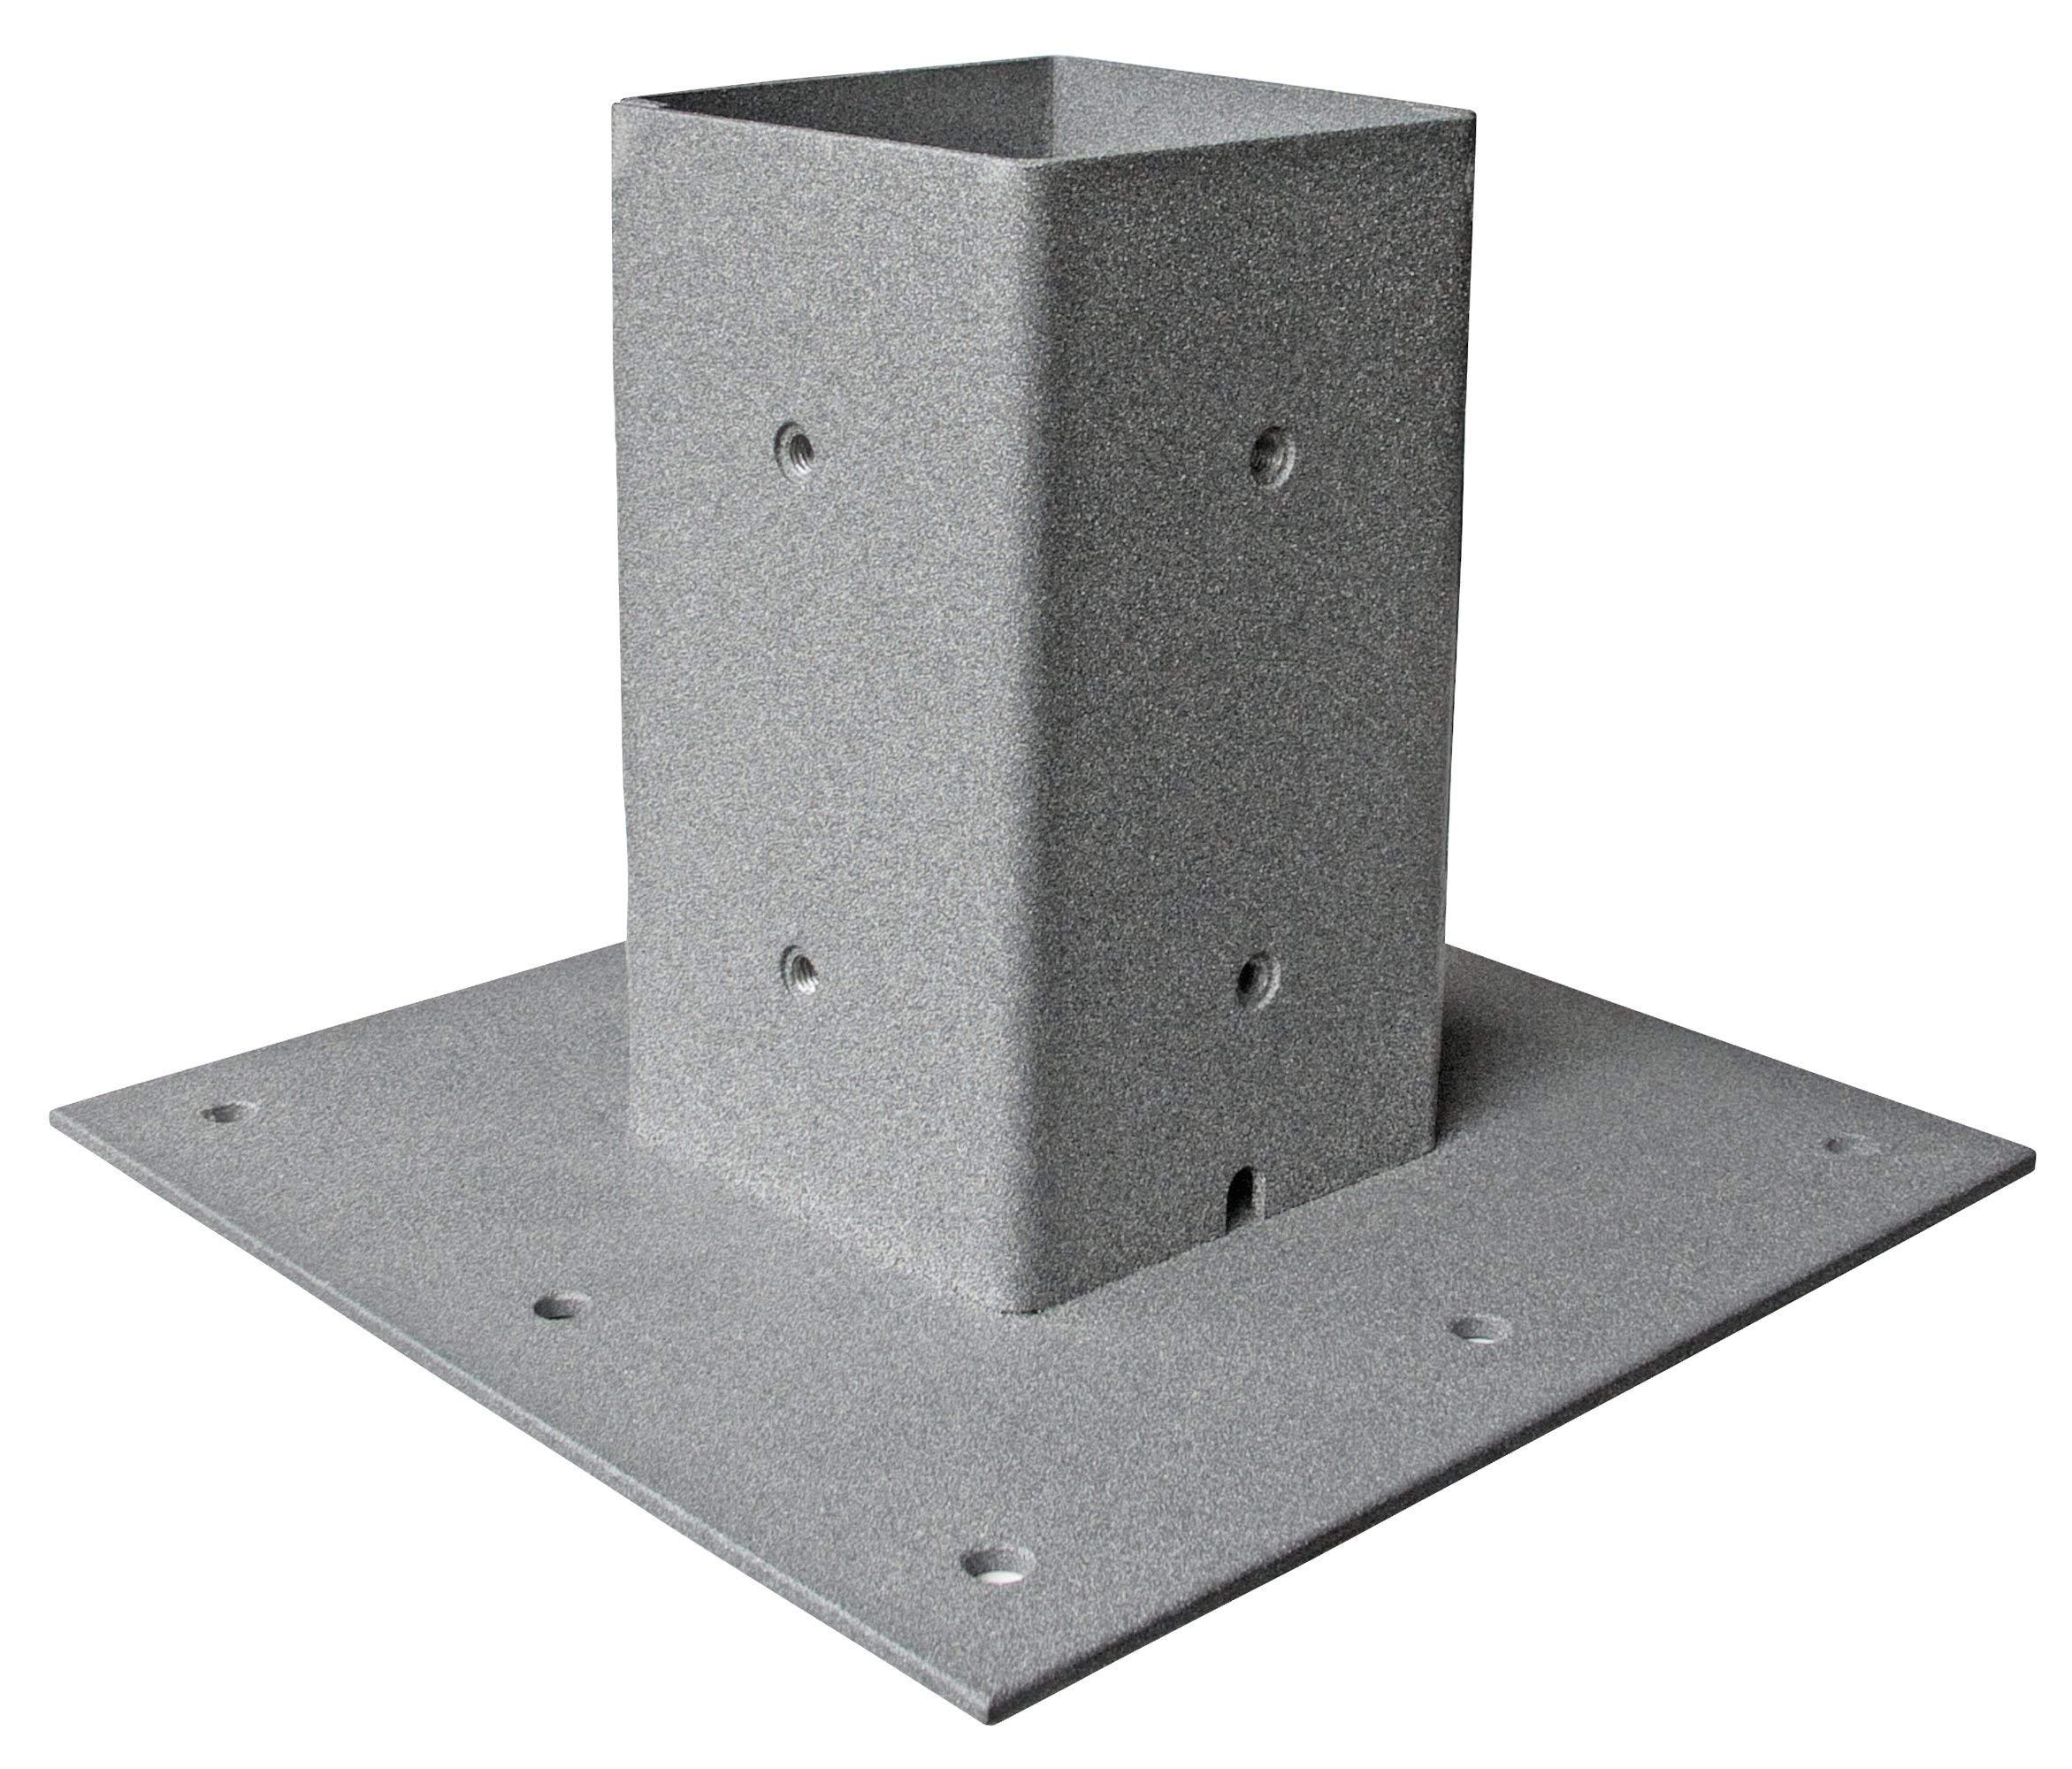 Mail Boss 7156 Surface Mount Post Base Plate, Granite (Renewed) by Mail Boss